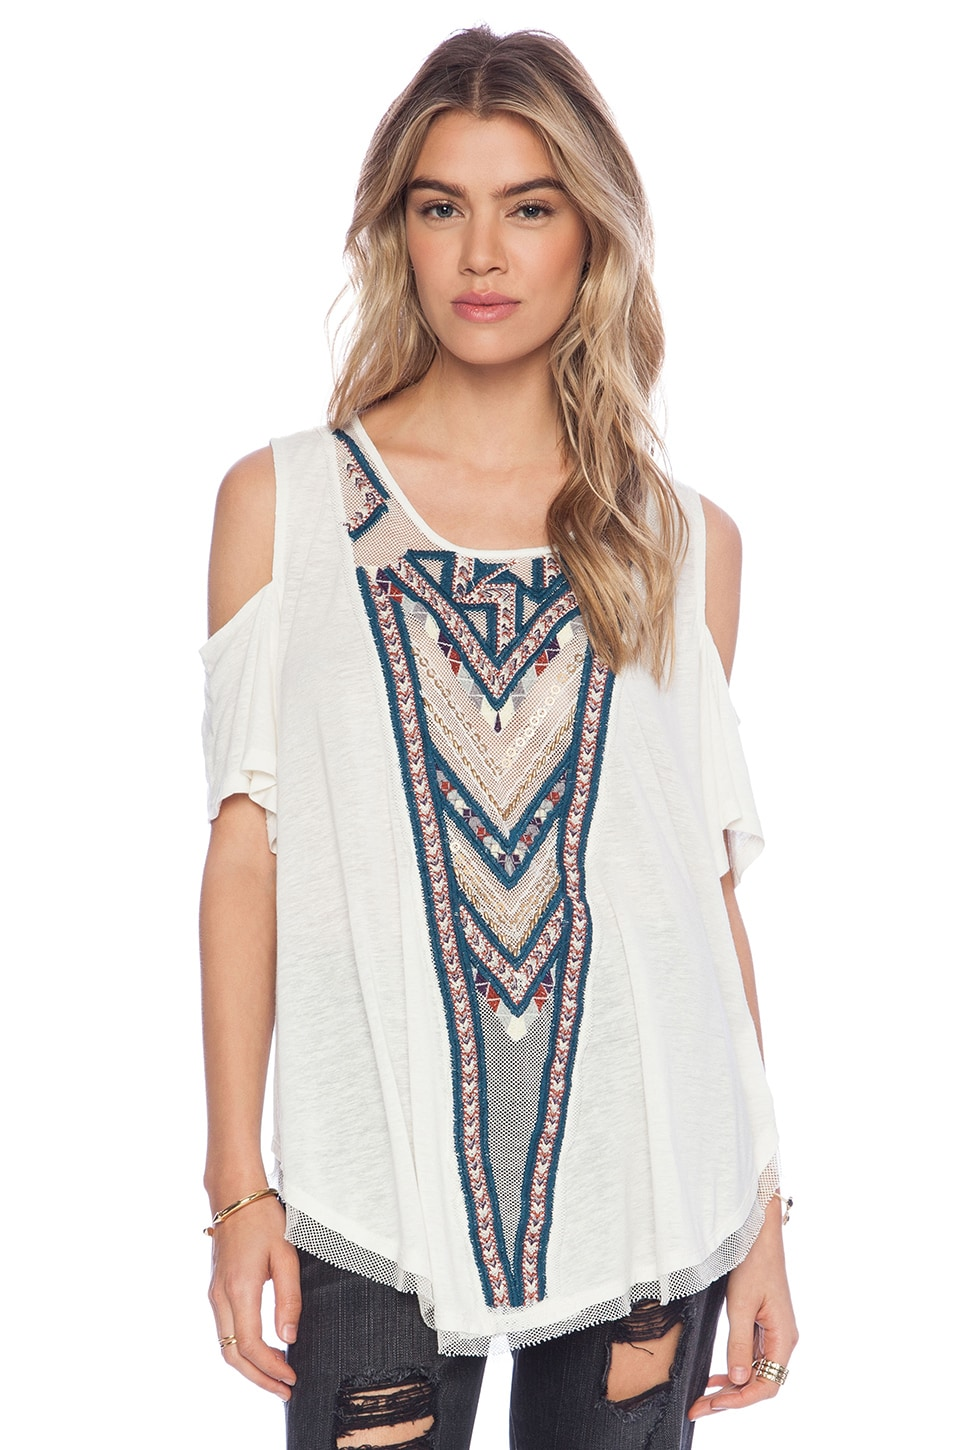 Free People Gypsy Spell Top in Ivory